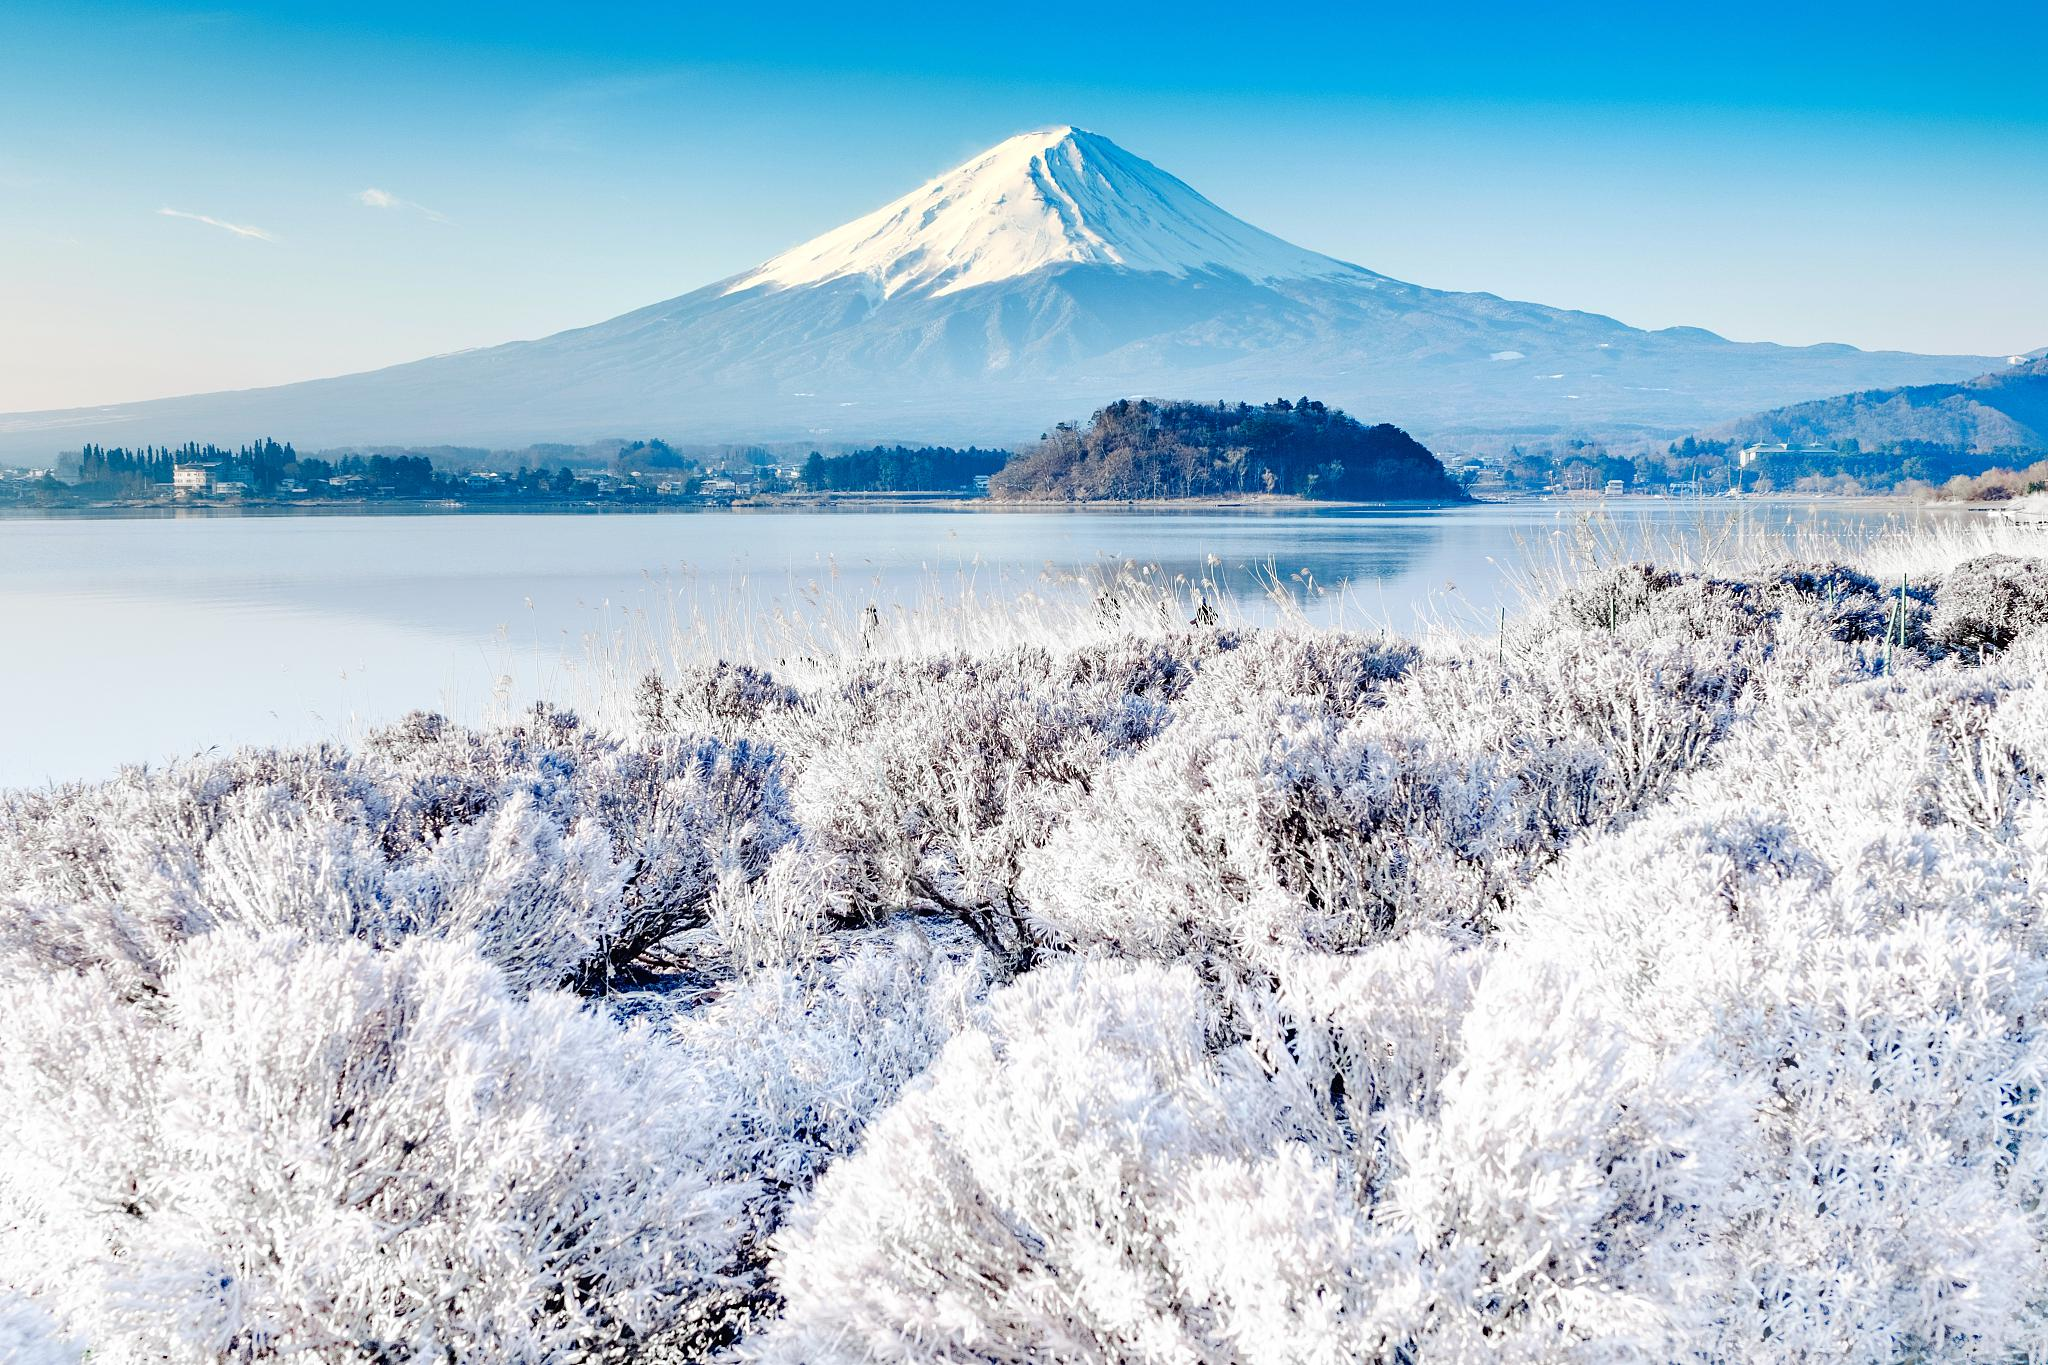 This peaceful imagery, however, makes it easy to forget that it's actually an active volcano with the power to decimate its surrounding areas in seconds. Mount Fuji Travel Guidebook Must Visit Attractions In Mount Fuji Mount Fuji Nearby Recommendation Trip Com